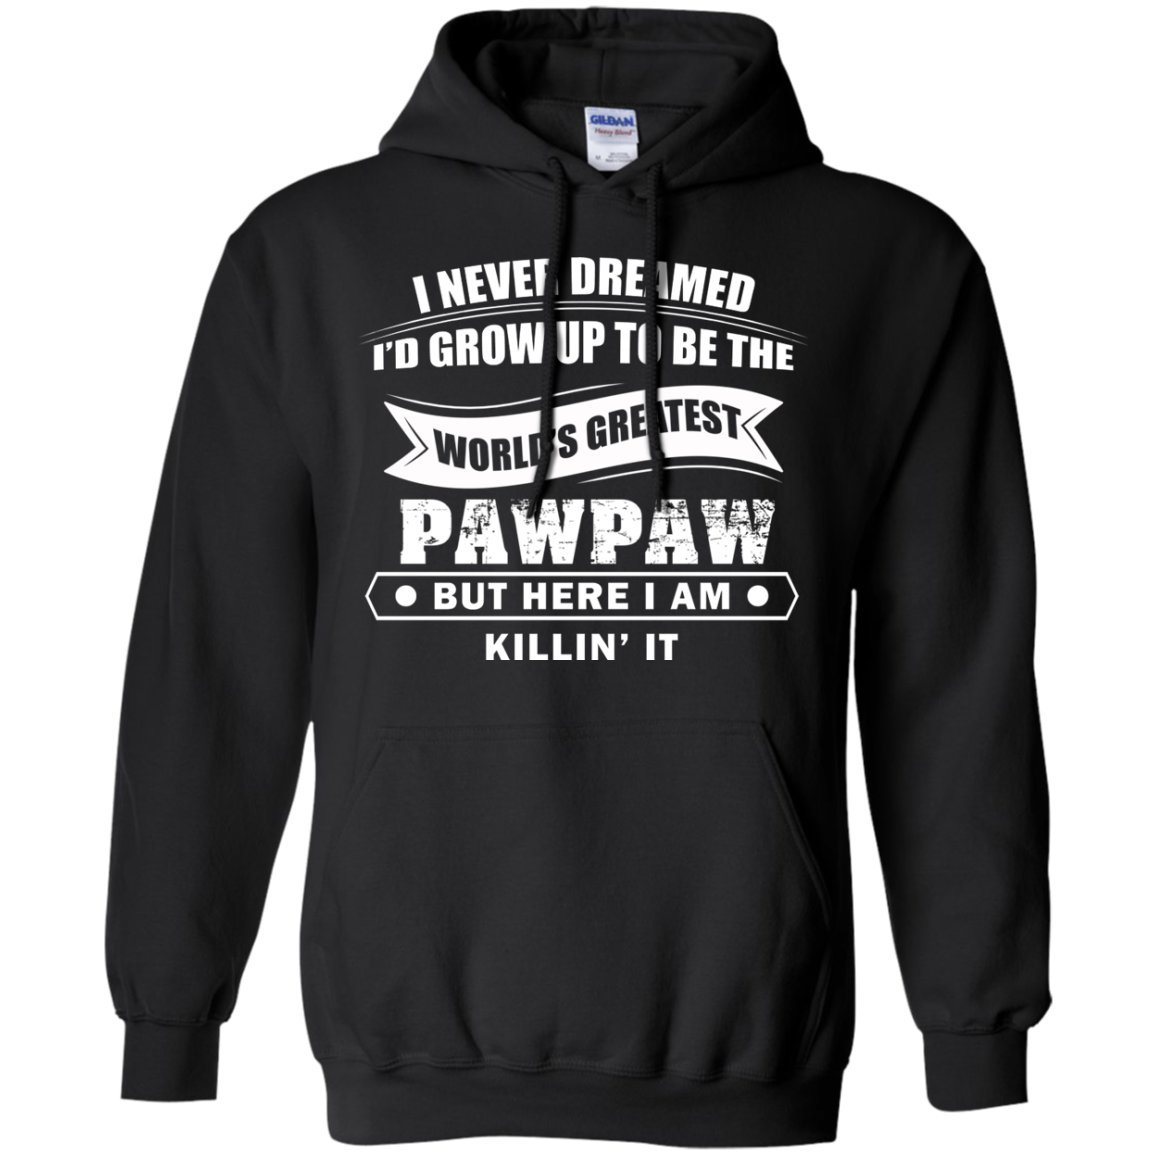 Paw Paw Gift I Never Dreamed I/'D Be A.. - Unisex Shirt Paw Paw..